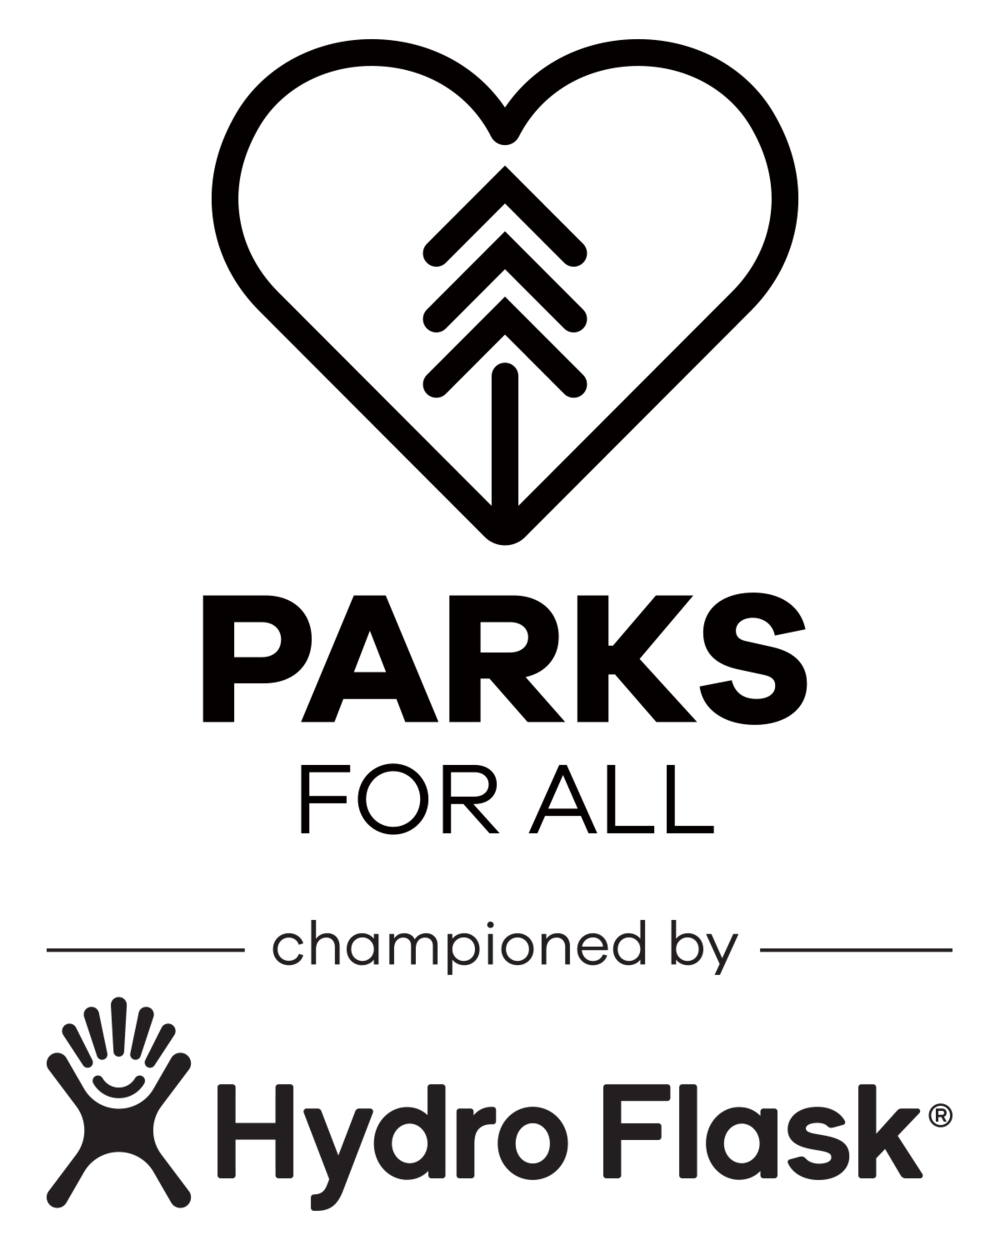 Hydro-Flask-ParksForAll-Lockup1-Logo-Black VERTICAL-1200x1500.png